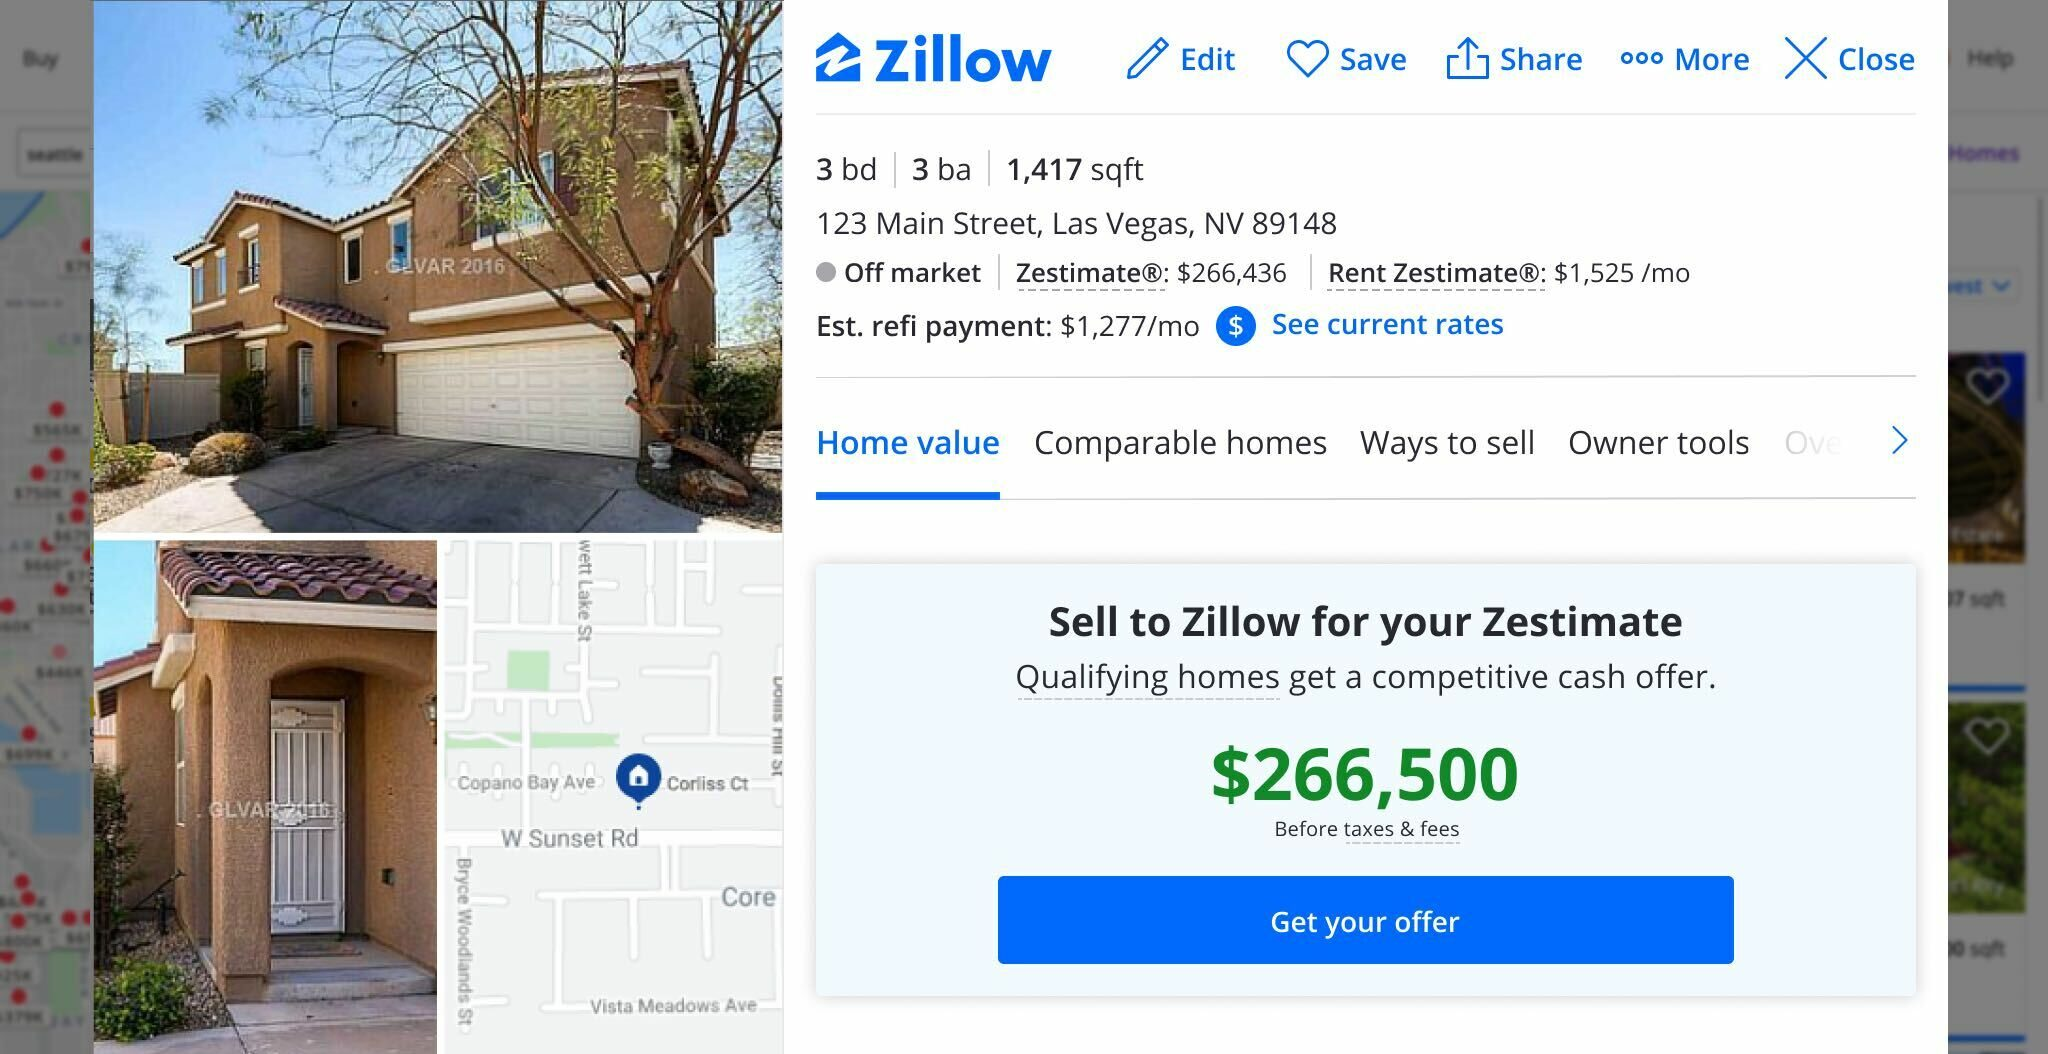 Zillow is now using its Zestimate tool to make cash offers